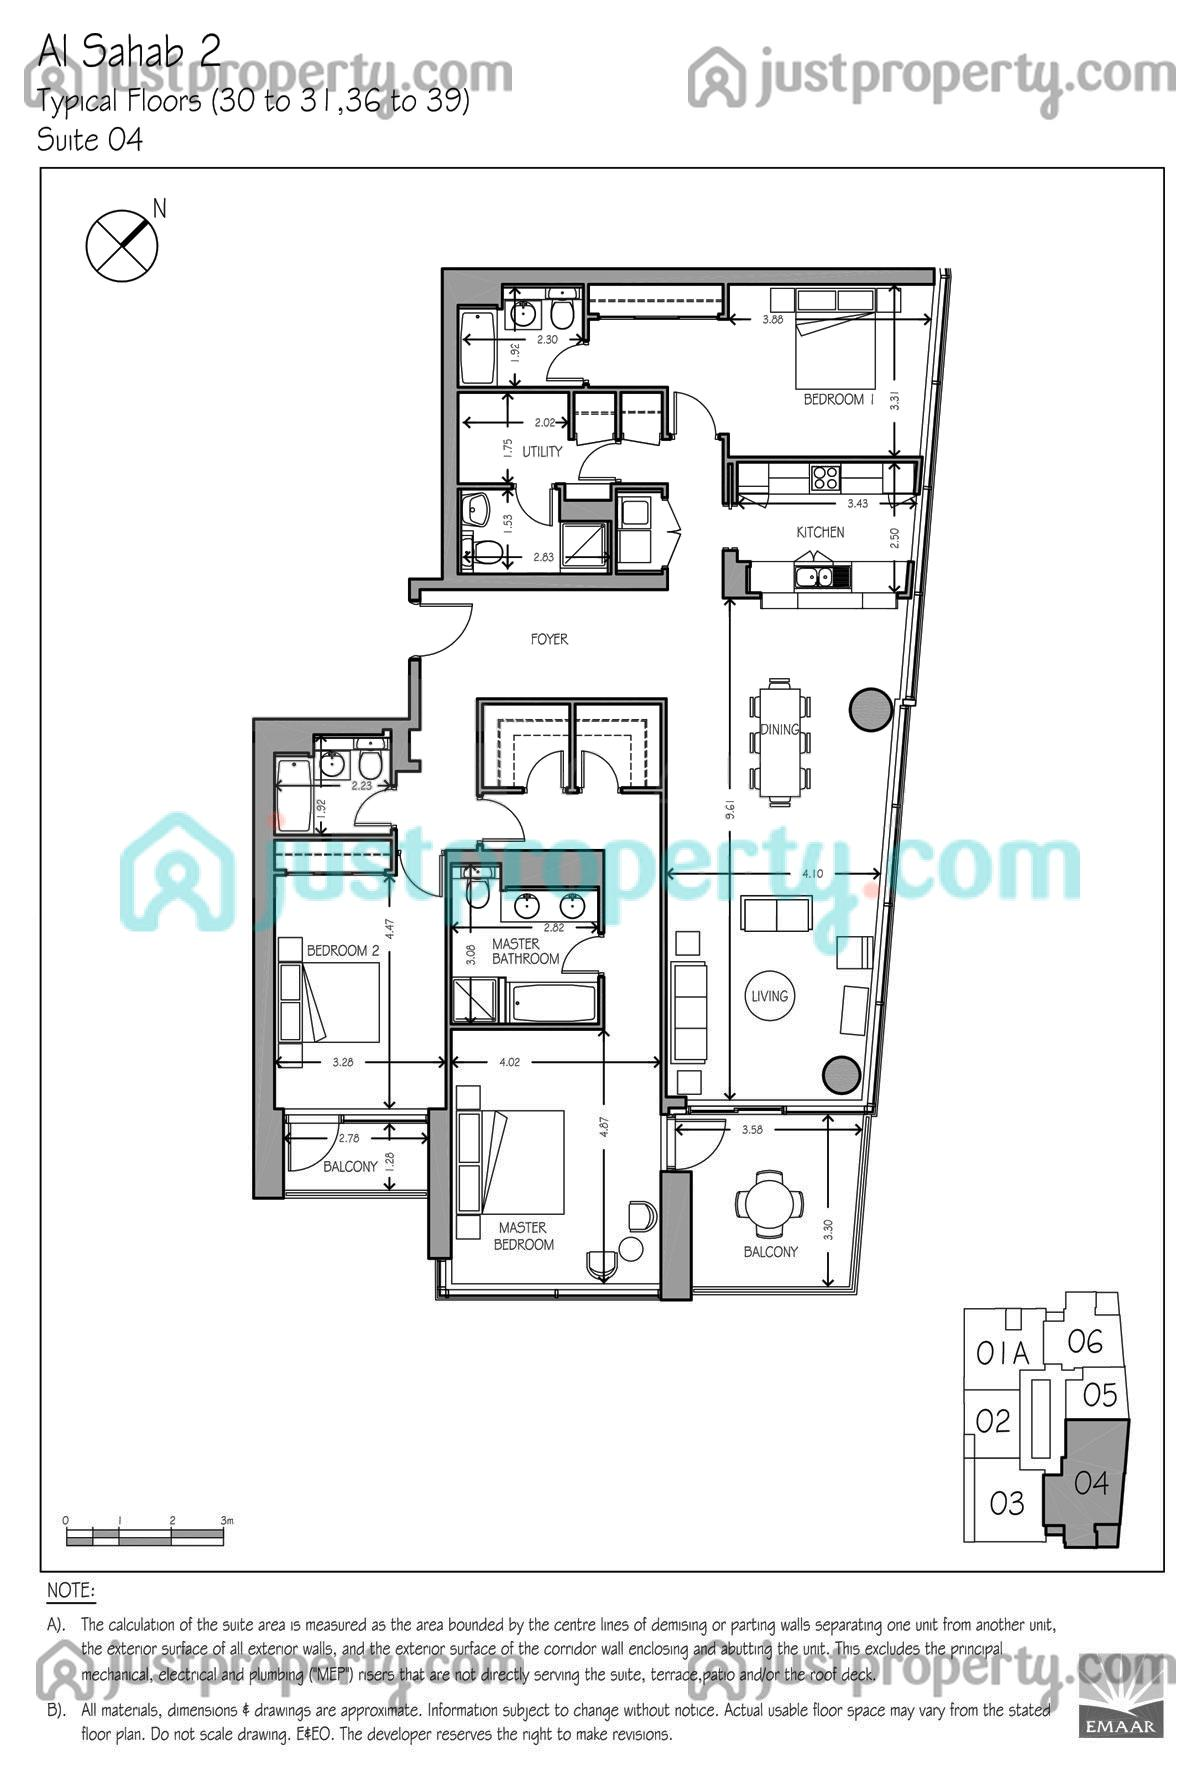 Al Sahab T2 Version 1 Floor Plans Justproperty Com